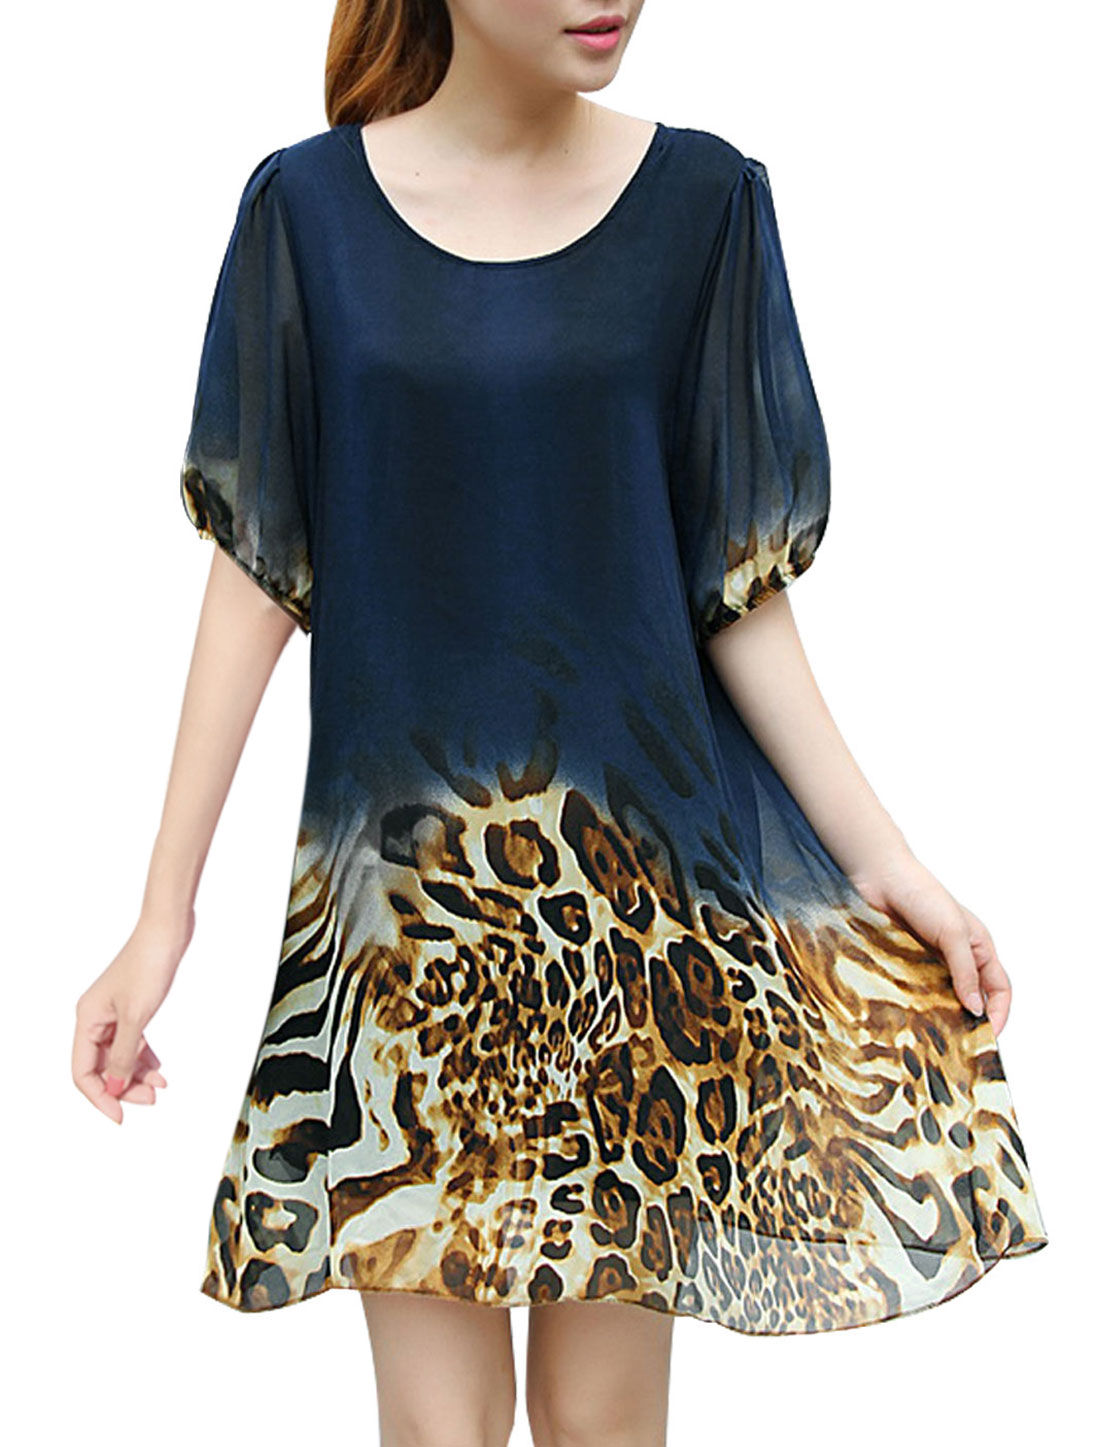 Women Short Sleeve Elastic Cuffs Leopard Prints Chiffon Dress Navy Blue S